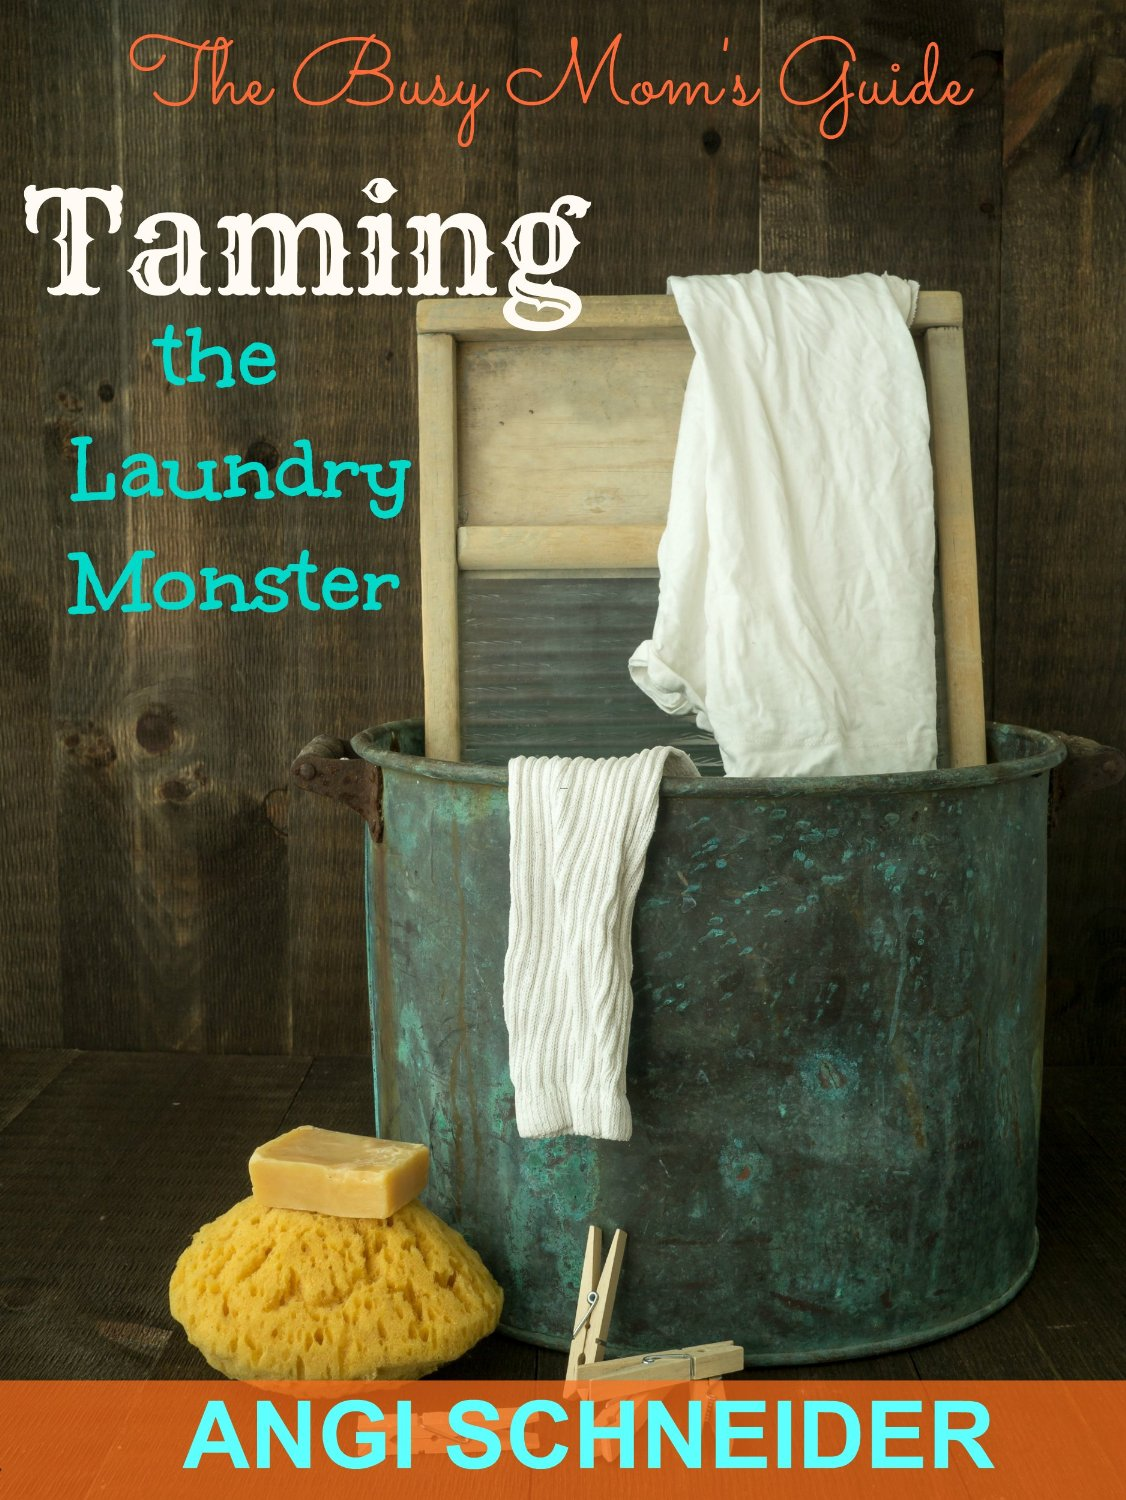 Taming the Laundry Monster by Angi Schneider